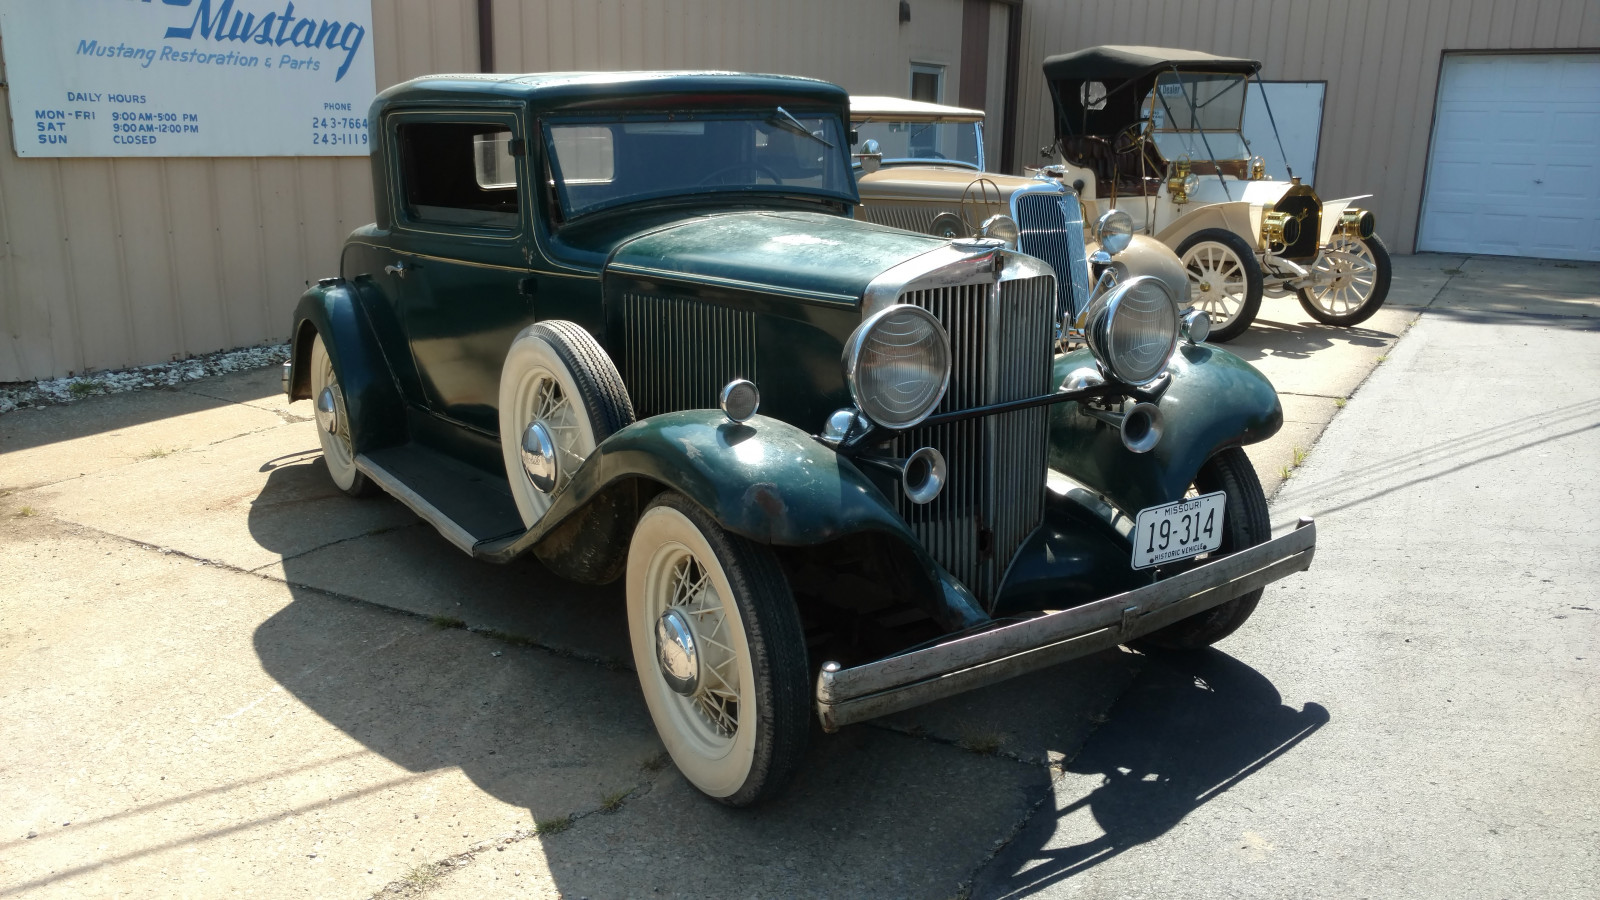 1932 Hupmobile Rumble seat Coupe - Image 3